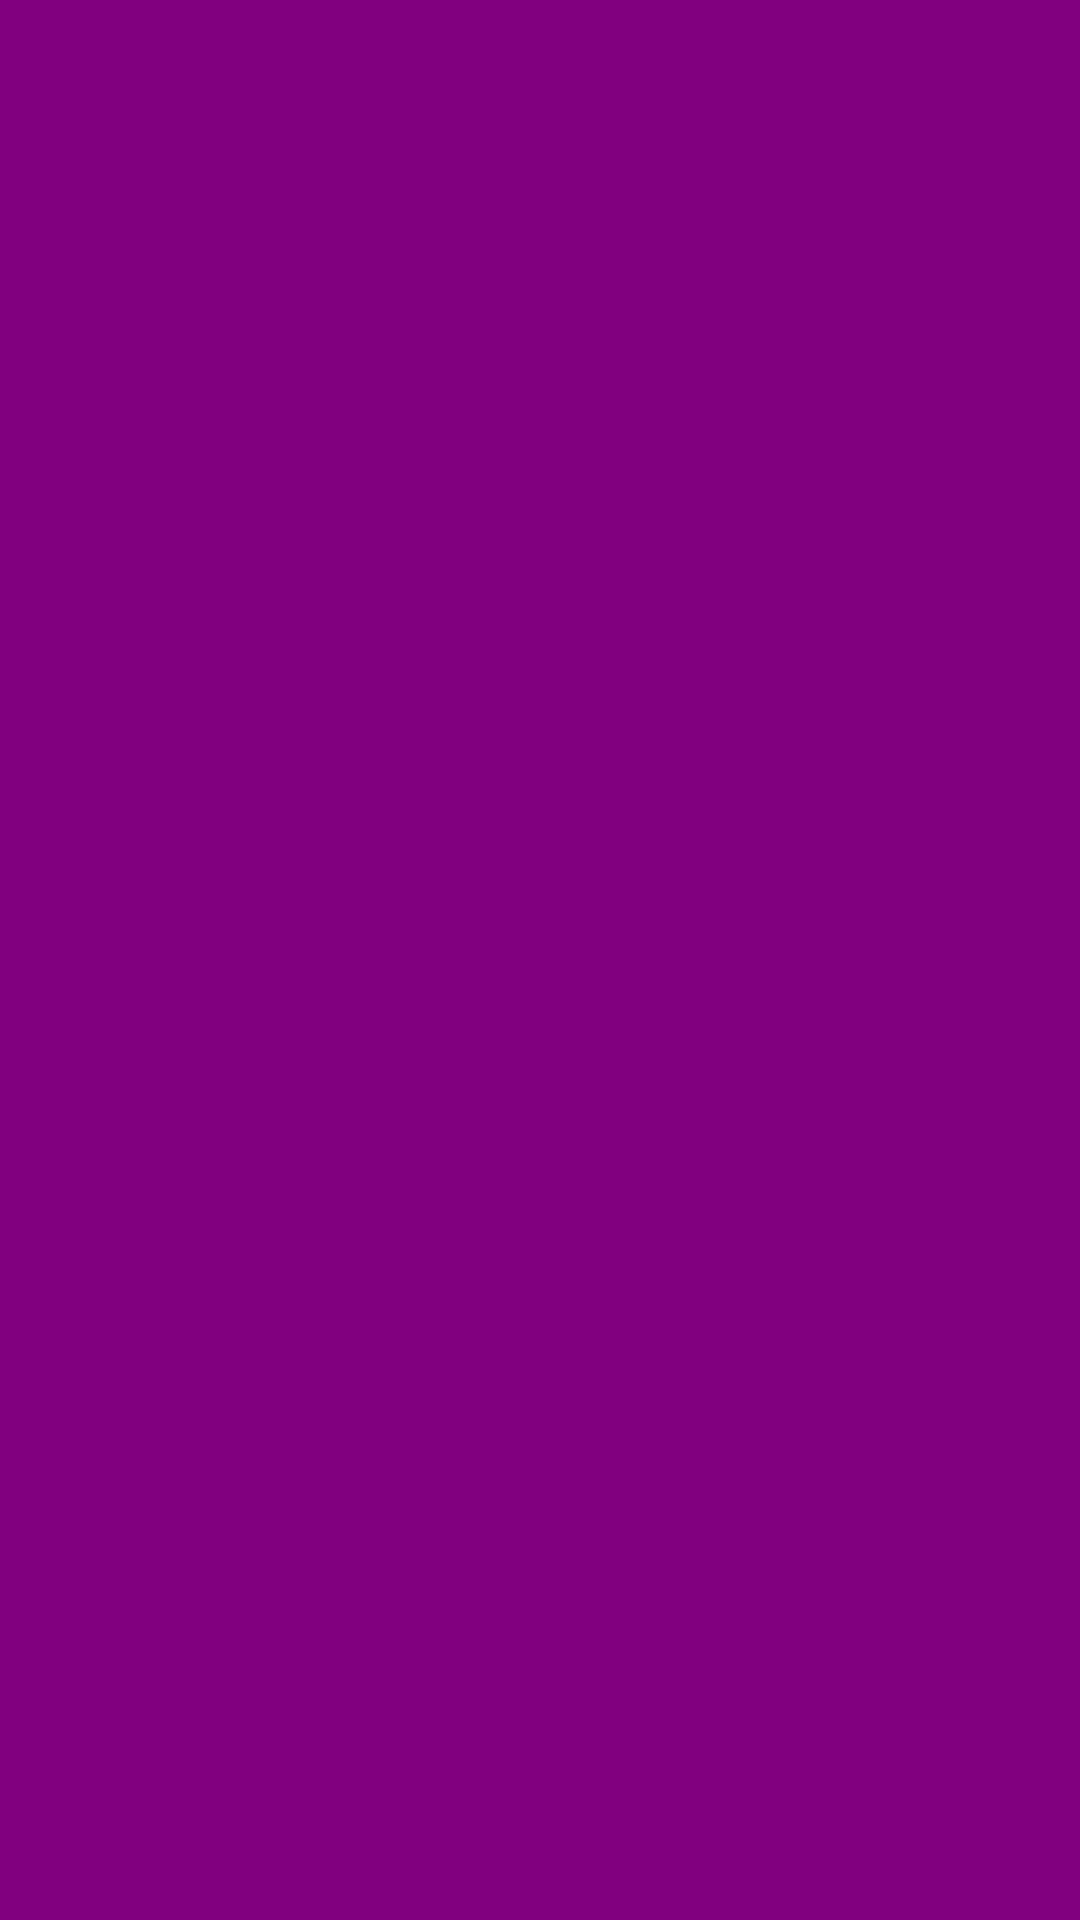 1080x1920 Purple Web Solid Color Background